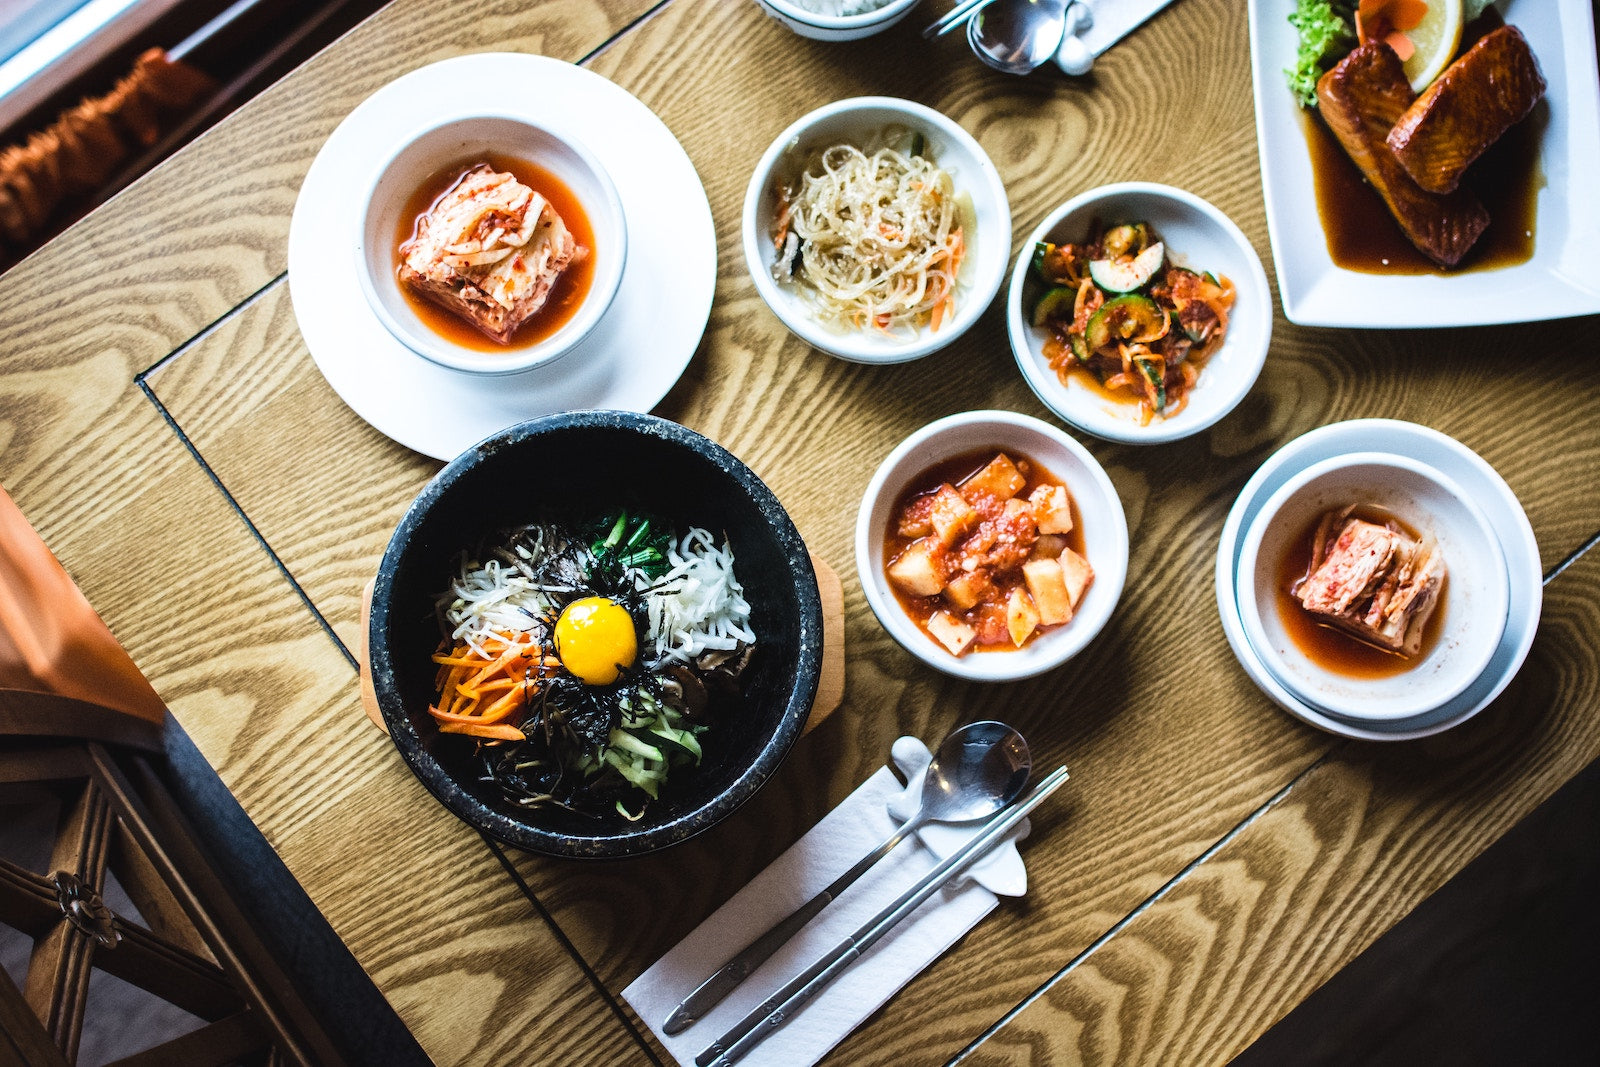 Korean dinner with kimchi